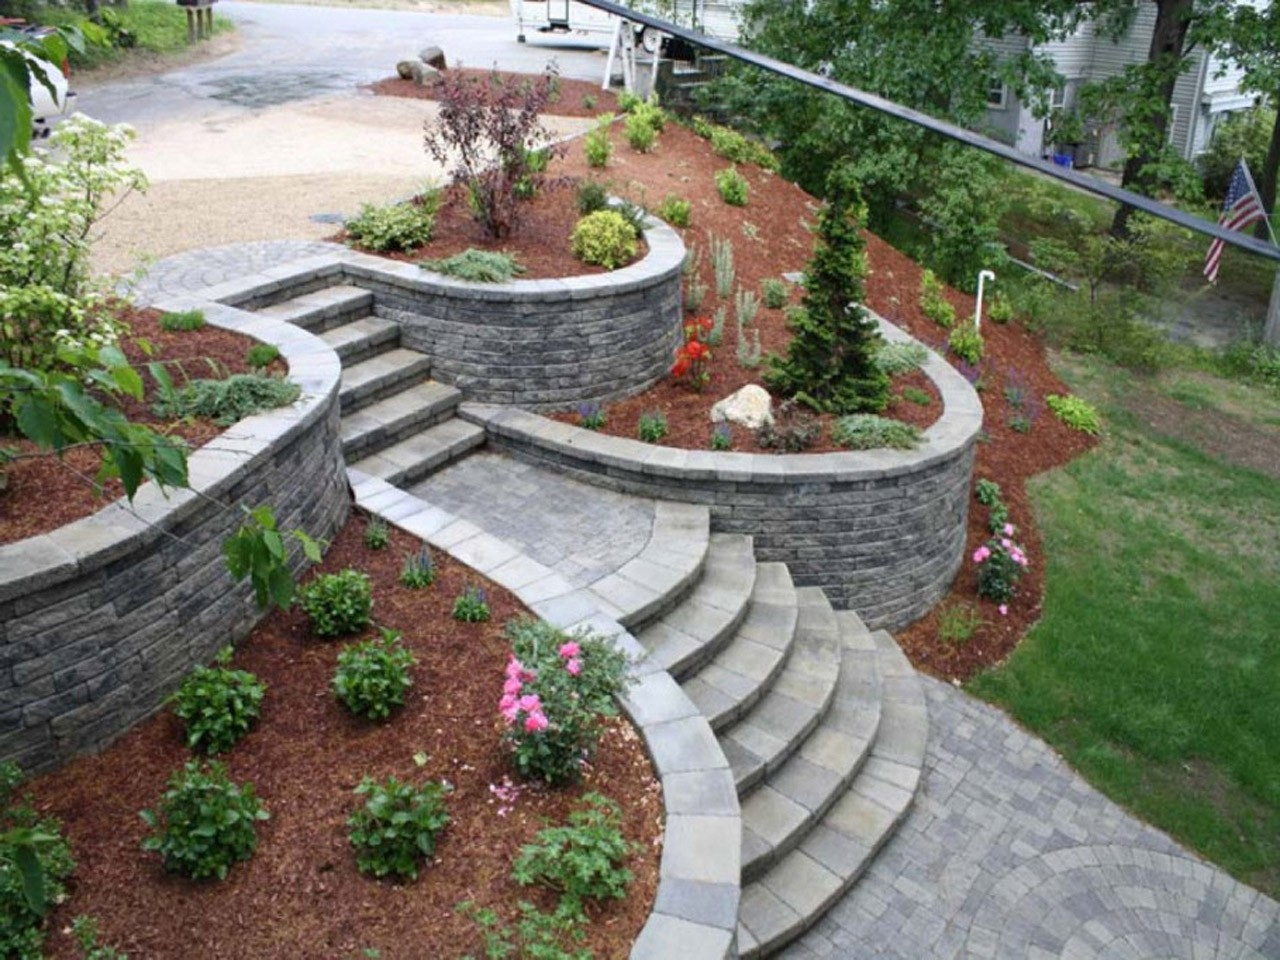 Sloped Backyard Landscaping Ideas 7 Amazing Landscape Chocoaddicts with regard to 12 Some of the Coolest Tricks of How to Build Sloped Backyard Landscaping Ideas